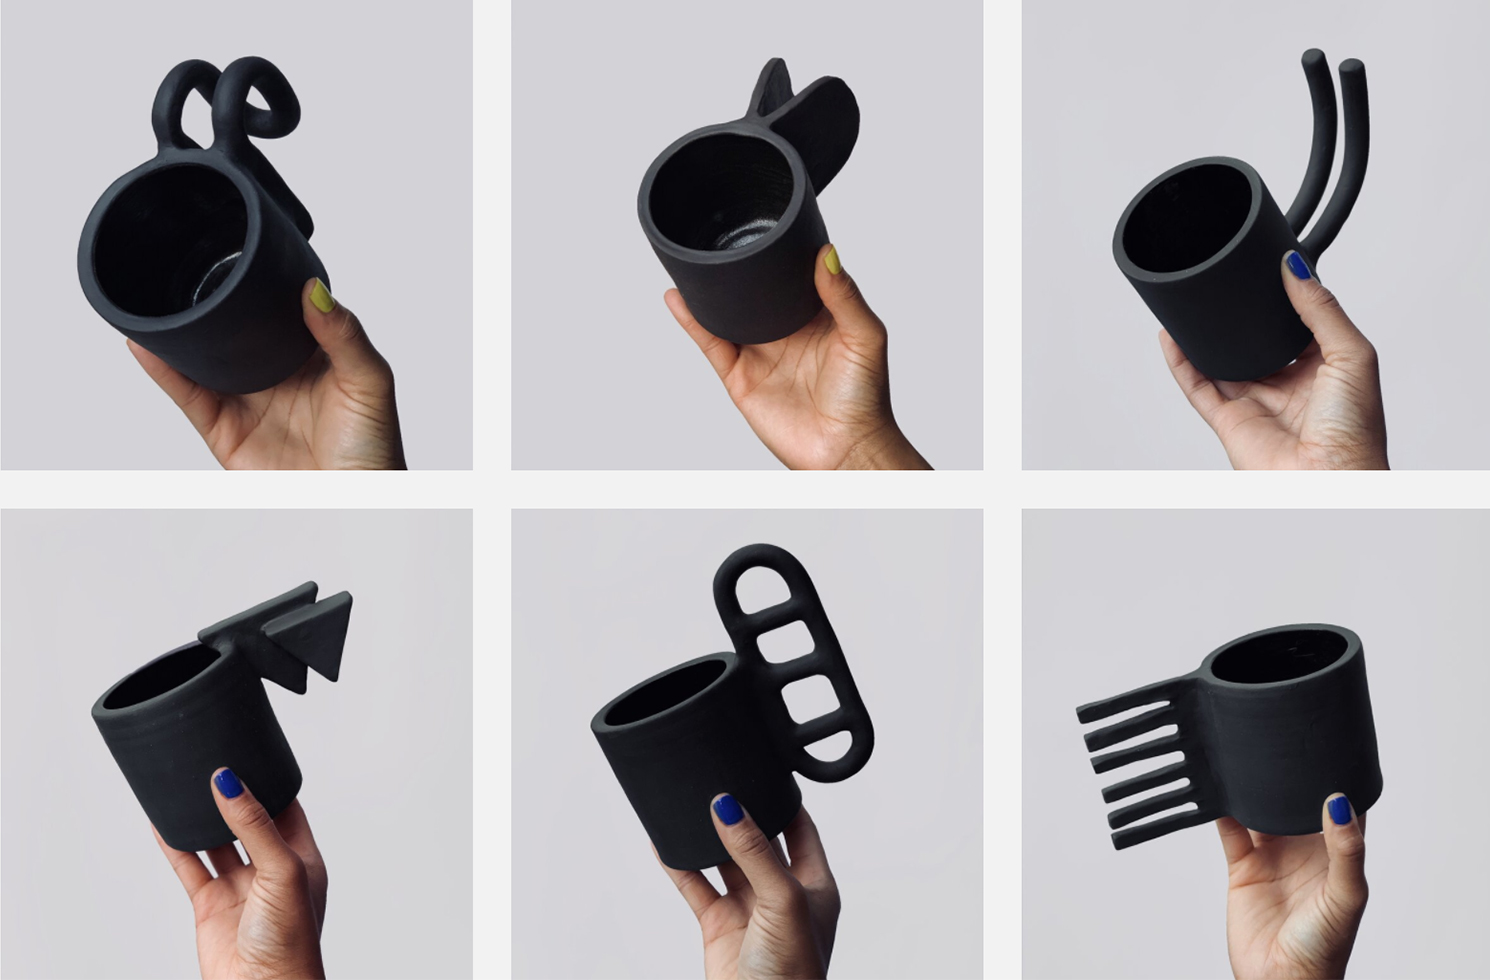 Ceramic Artist Lalese Stamps Creates 100 Wildly Varying Mug Handles In 100 Days Colossal